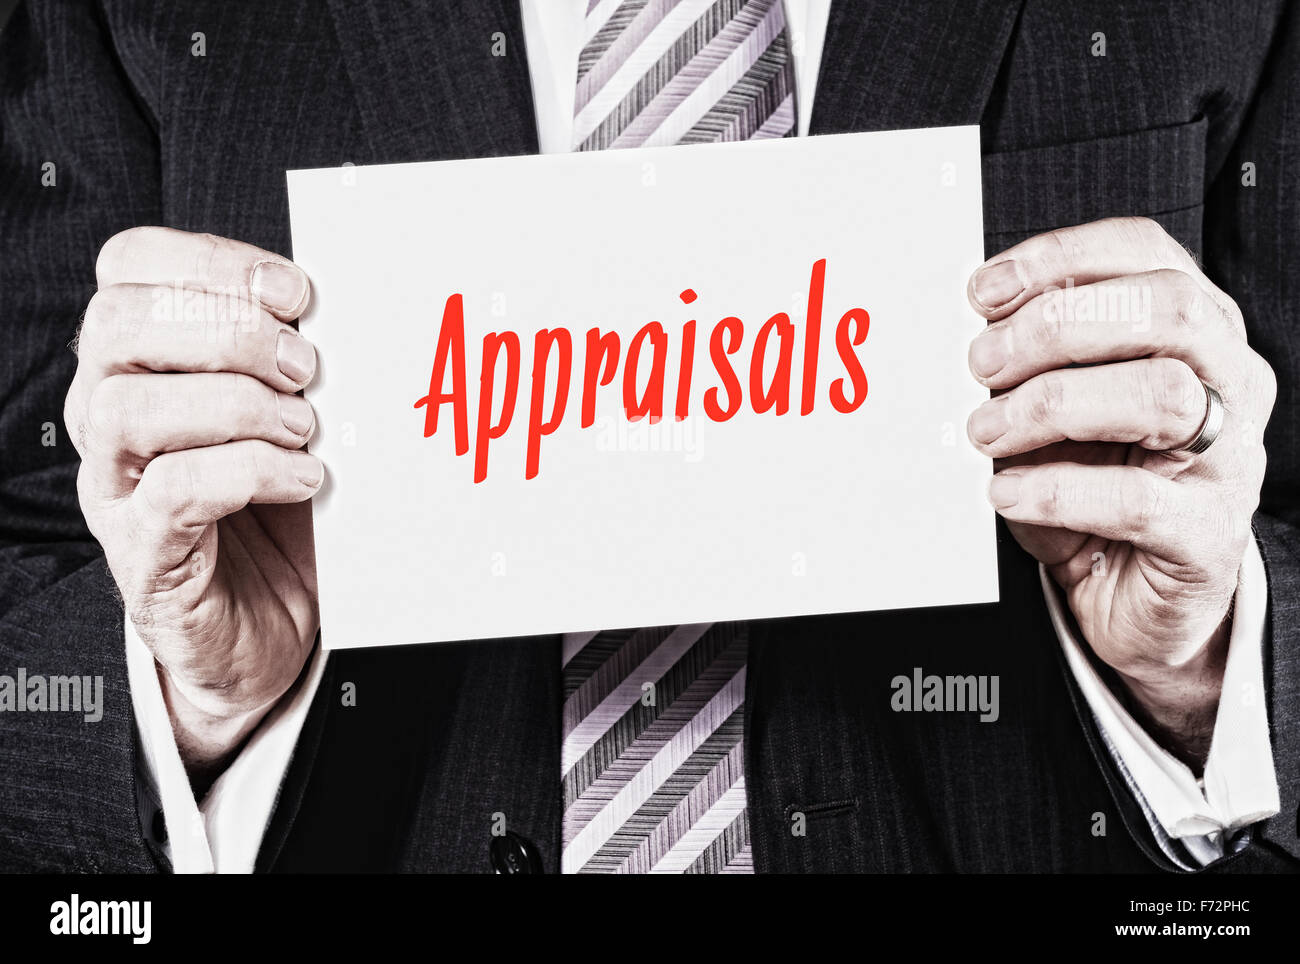 Appraisals, Induction Training headlines concept. - Stock Image